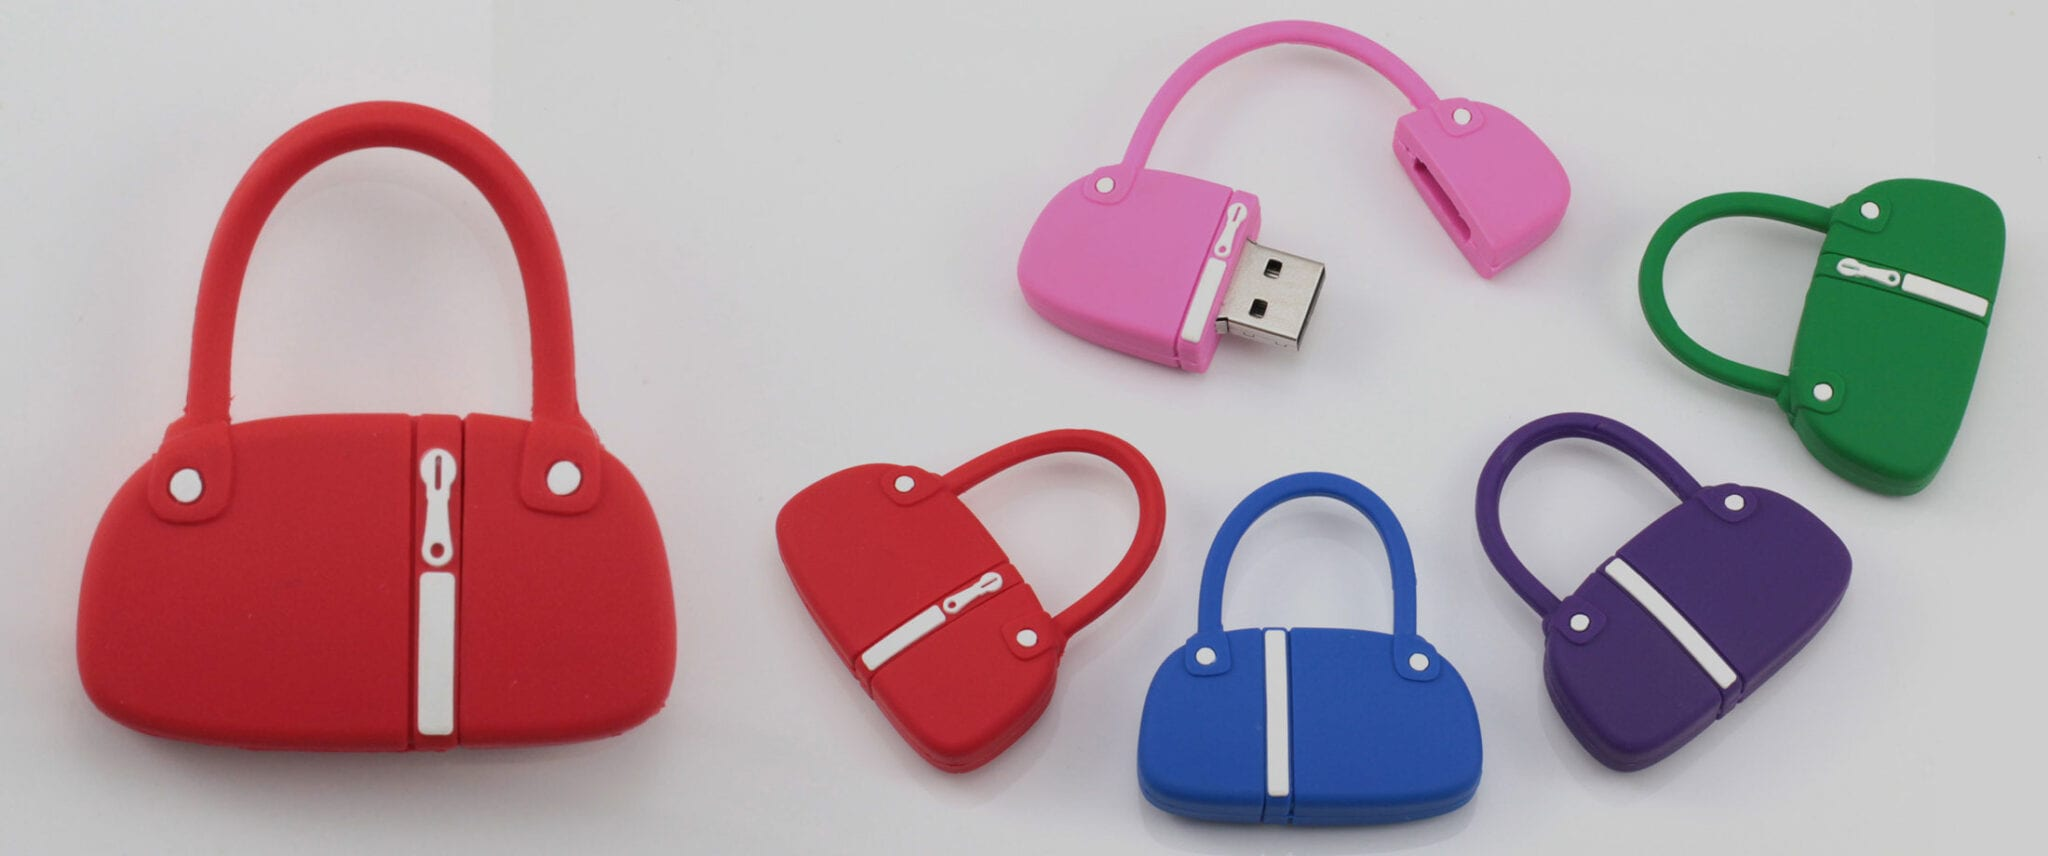 USB Custom Series